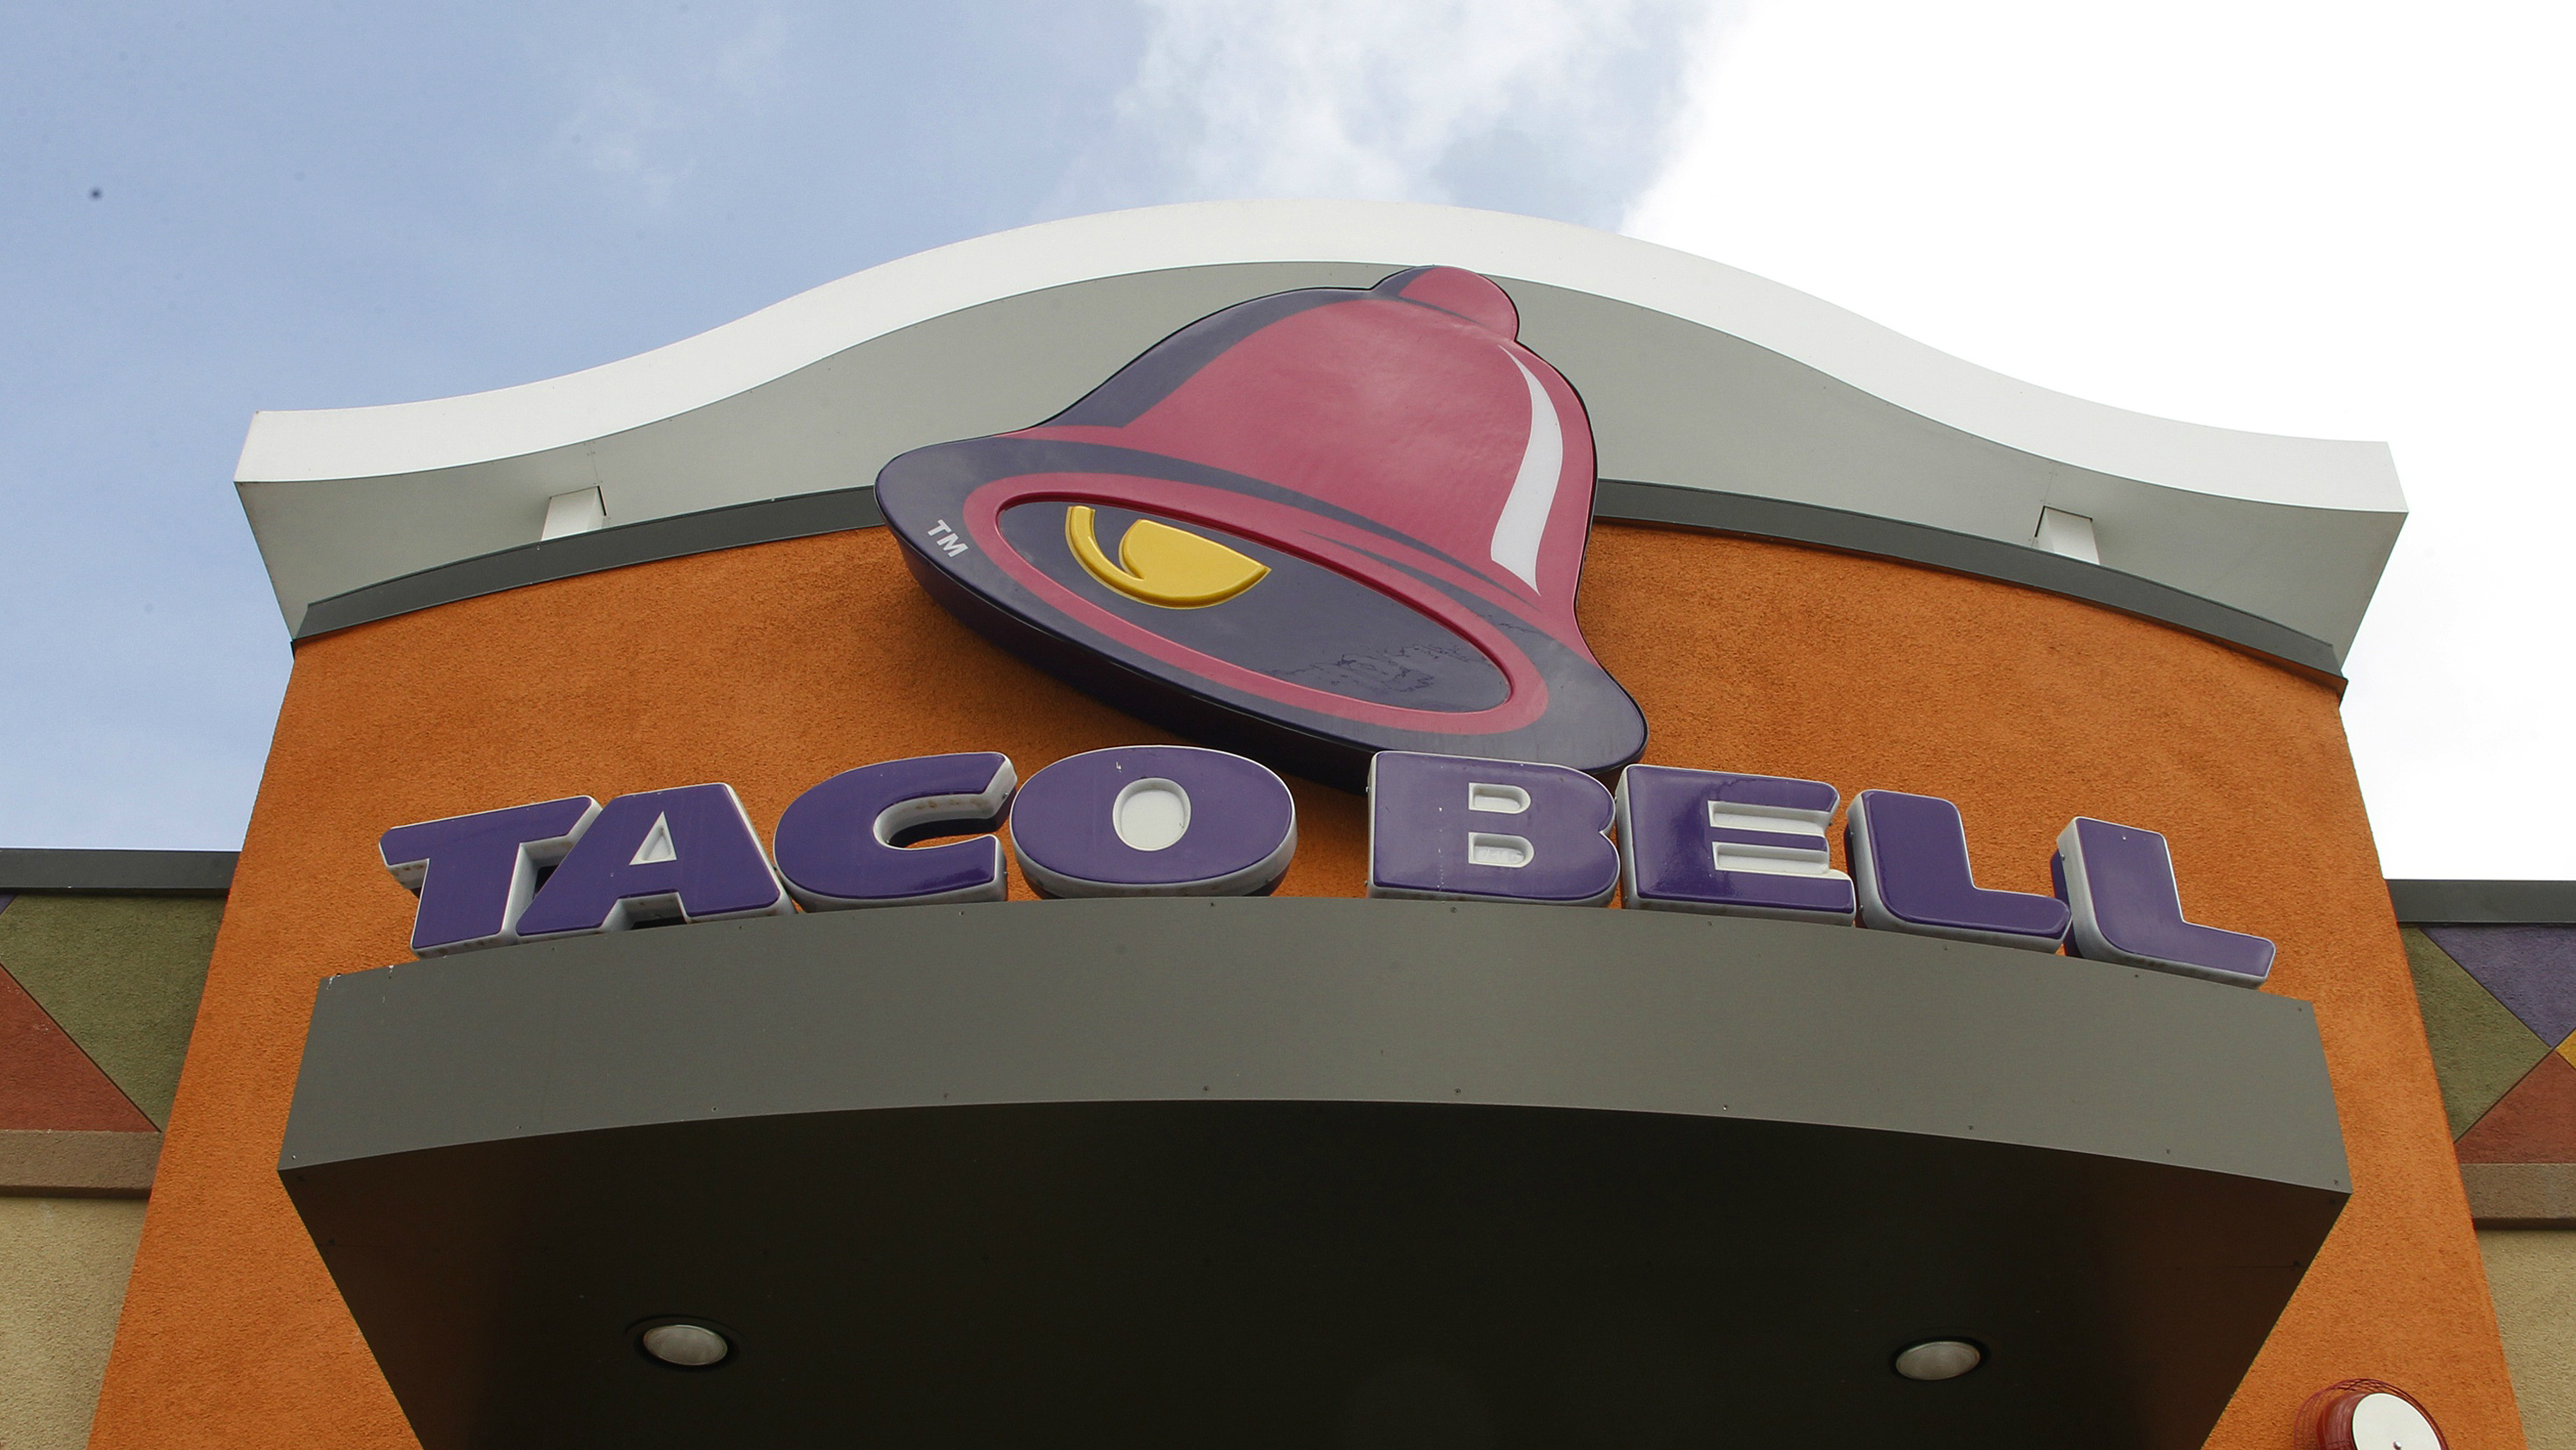 The sign on a Taco Bell franchise.